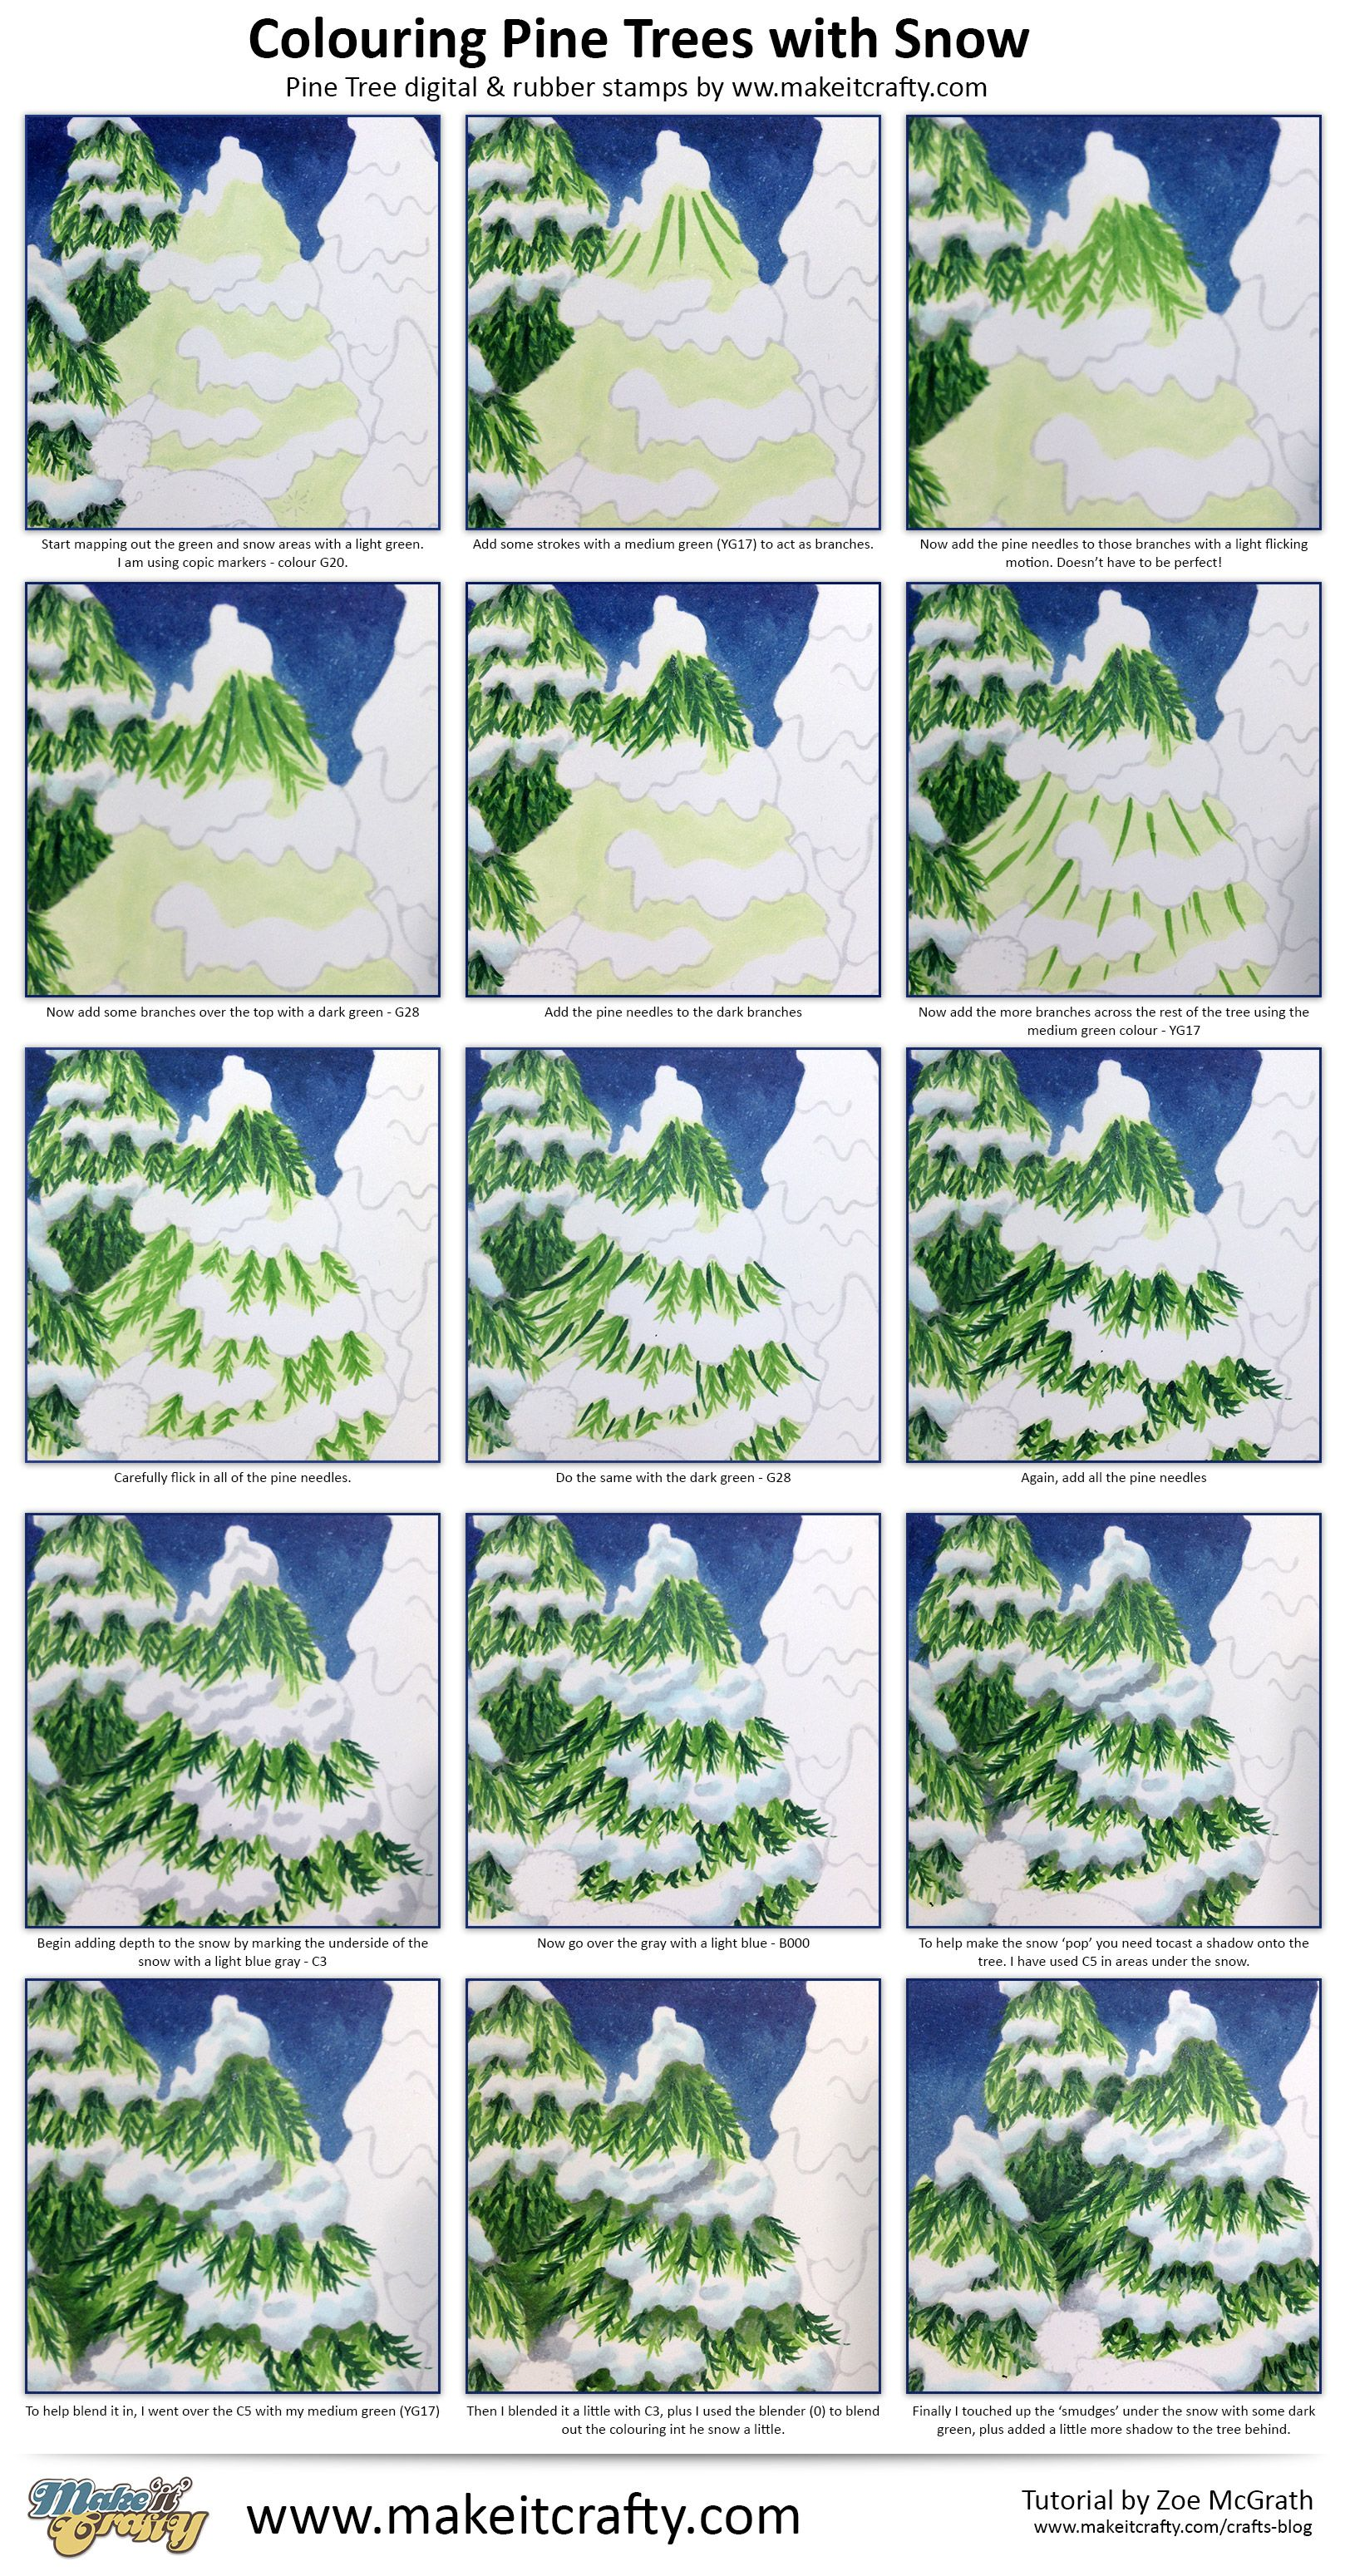 Coloring Pine Trees With Snow